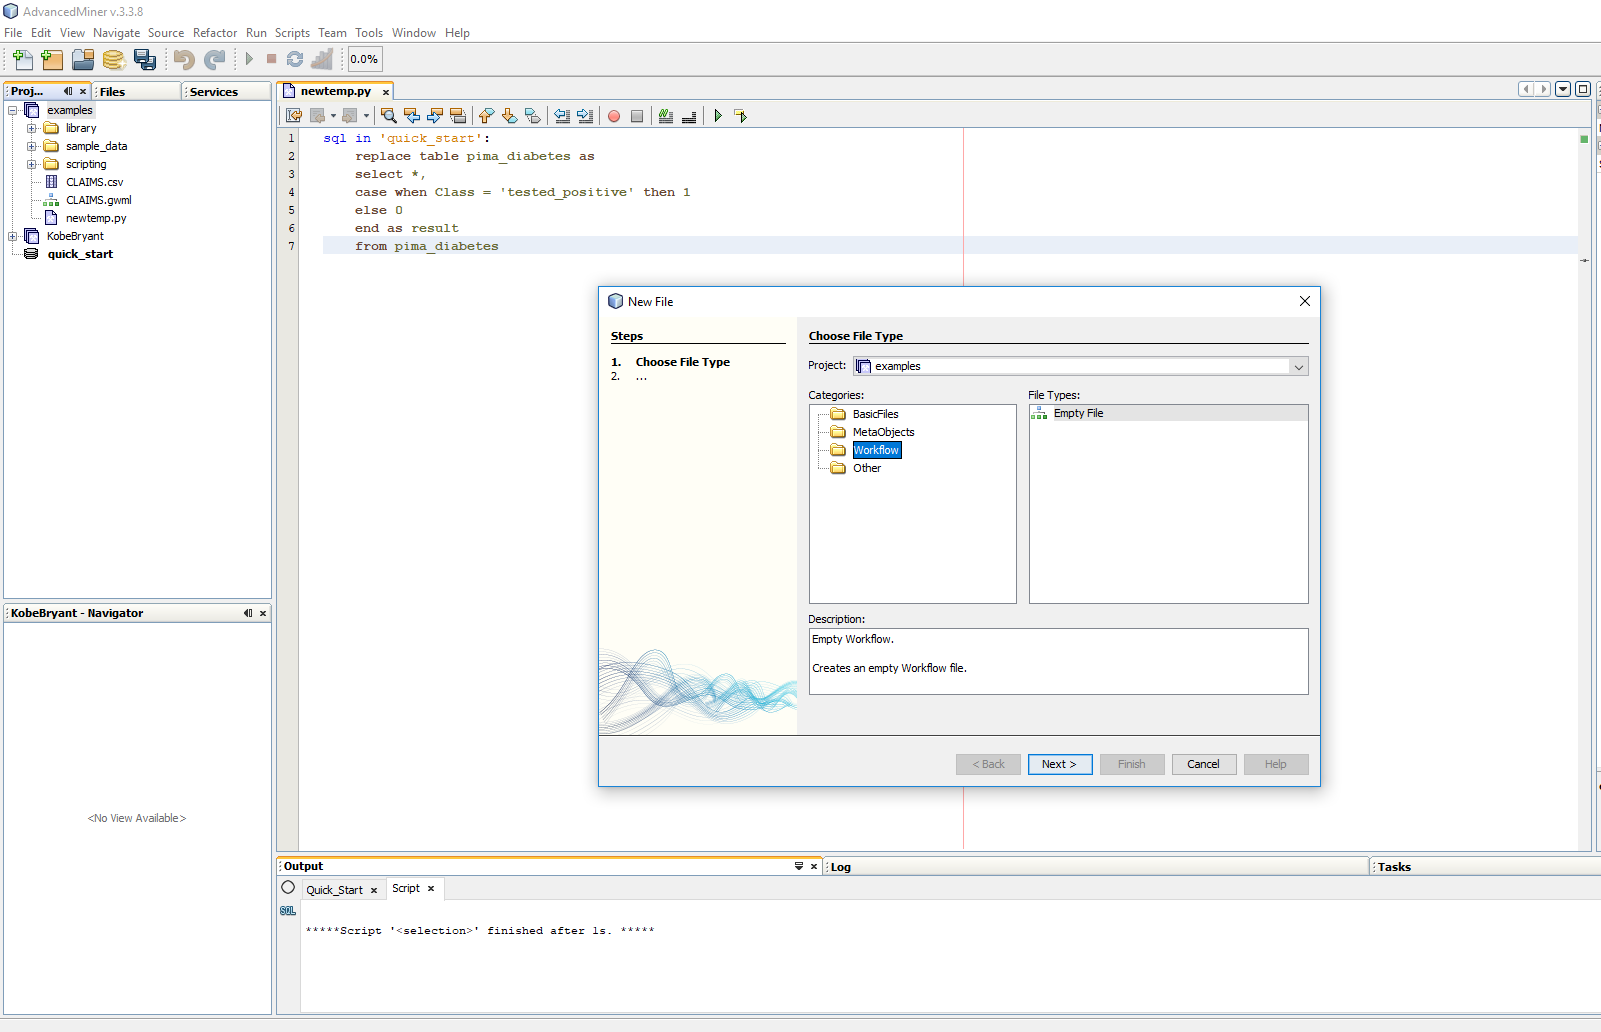 Building predictive models in AdvancedMiner - 10